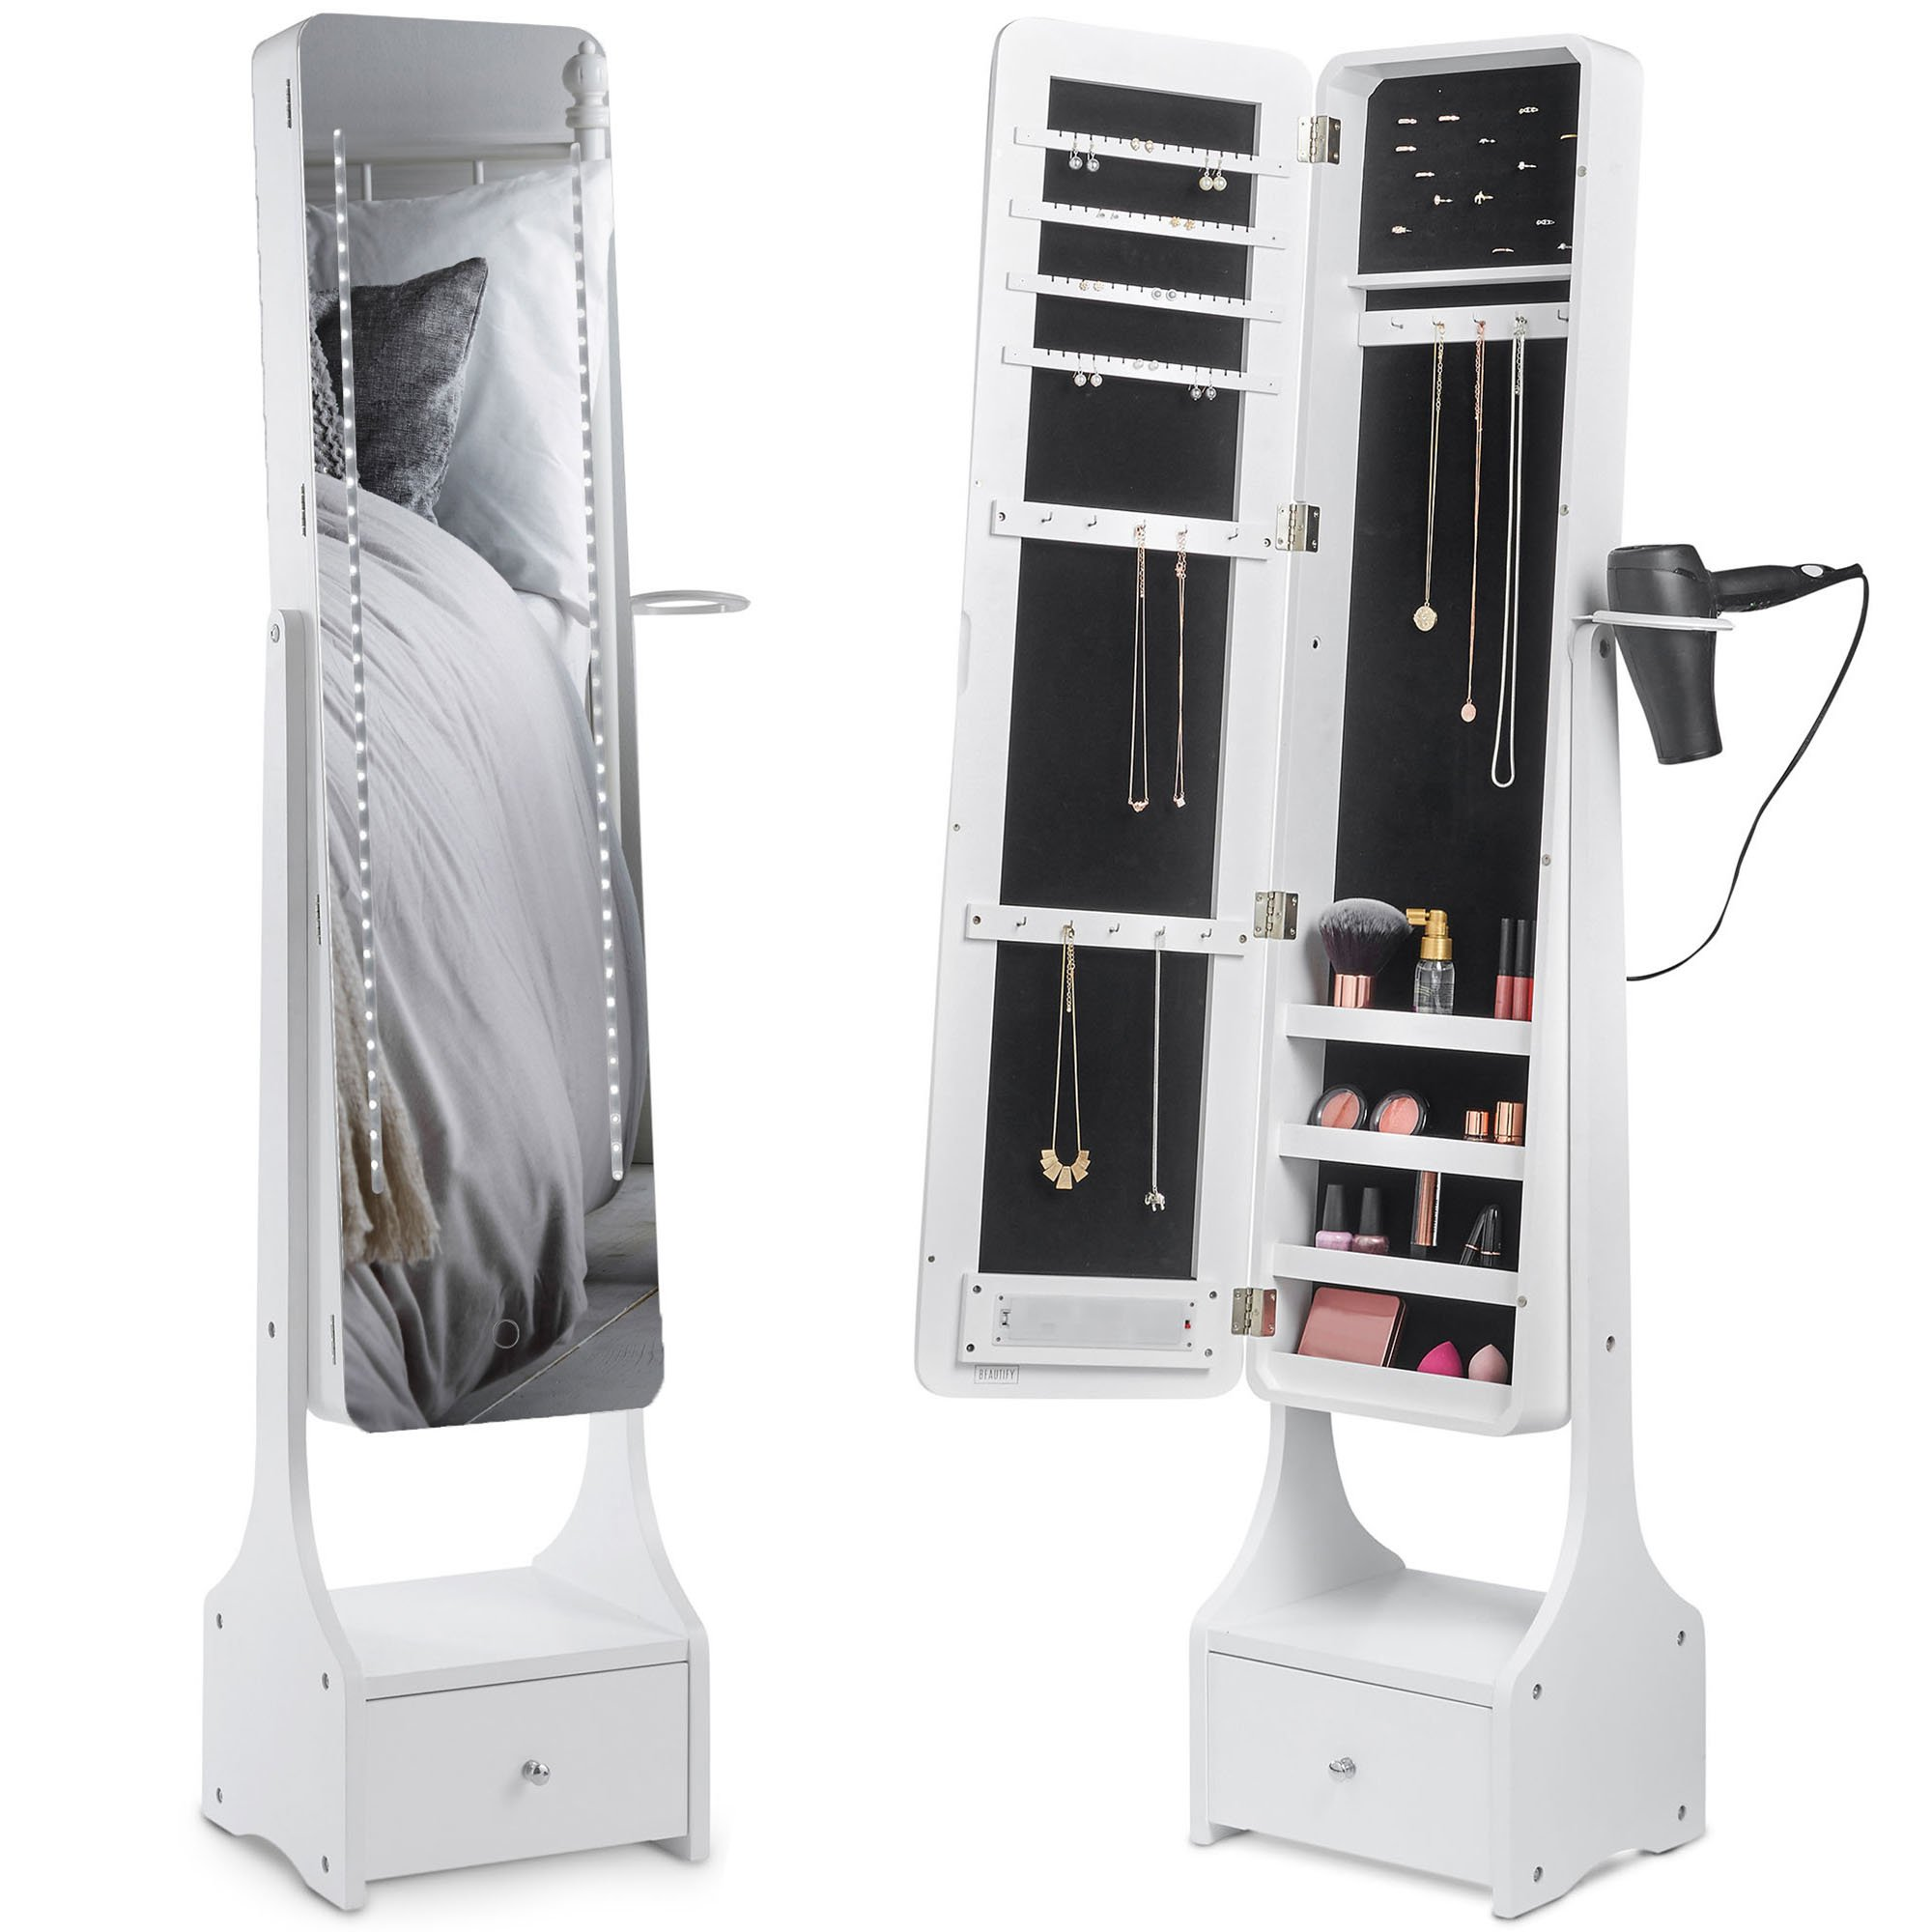 Beautify Touch screen LED Jewelry Cabinet Armoire Illuminating Mirrored Light Standing Organizer with Mirror, Makeup Storage and Drawer - White